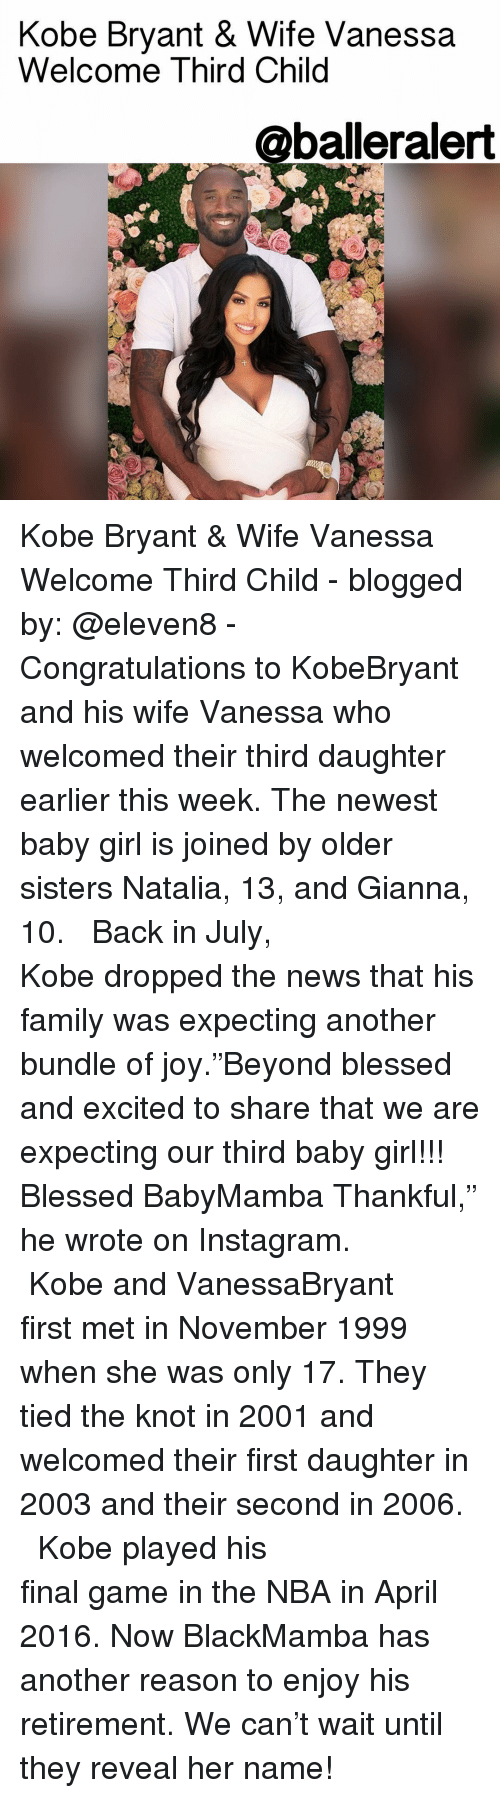 """gianna: Kobe Bryant & Wife Vanessa  Welcome Third Child  @balleralert Kobe Bryant & Wife Vanessa Welcome Third Child - blogged by: @eleven8 - ⠀⠀⠀⠀⠀⠀⠀⠀⠀ ⠀⠀⠀⠀⠀⠀⠀⠀⠀ Congratulations to KobeBryant and his wife Vanessa who welcomed their third daughter earlier this week. The newest baby girl is joined by older sisters Natalia, 13, and Gianna, 10. ⠀⠀⠀⠀⠀⠀⠀⠀⠀ ⠀⠀⠀⠀⠀⠀⠀⠀⠀ Back in July, Kobe dropped the news that his family was expecting another bundle of joy.""""Beyond blessed and excited to share that we are expecting our third baby girl!!! Blessed BabyMamba Thankful,"""" he wrote on Instagram. ⠀⠀⠀⠀⠀⠀⠀⠀⠀ ⠀⠀⠀⠀⠀⠀⠀⠀⠀ Kobe and VanessaBryant first met in November 1999 when she was only 17. They tied the knot in 2001 and welcomed their first daughter in 2003 and their second in 2006. ⠀⠀⠀⠀⠀⠀⠀⠀⠀ ⠀⠀⠀⠀⠀⠀⠀⠀⠀ Kobe played his final game in the NBA in April 2016. Now BlackMamba has another reason to enjoy his retirement. We can't wait until they reveal her name!"""